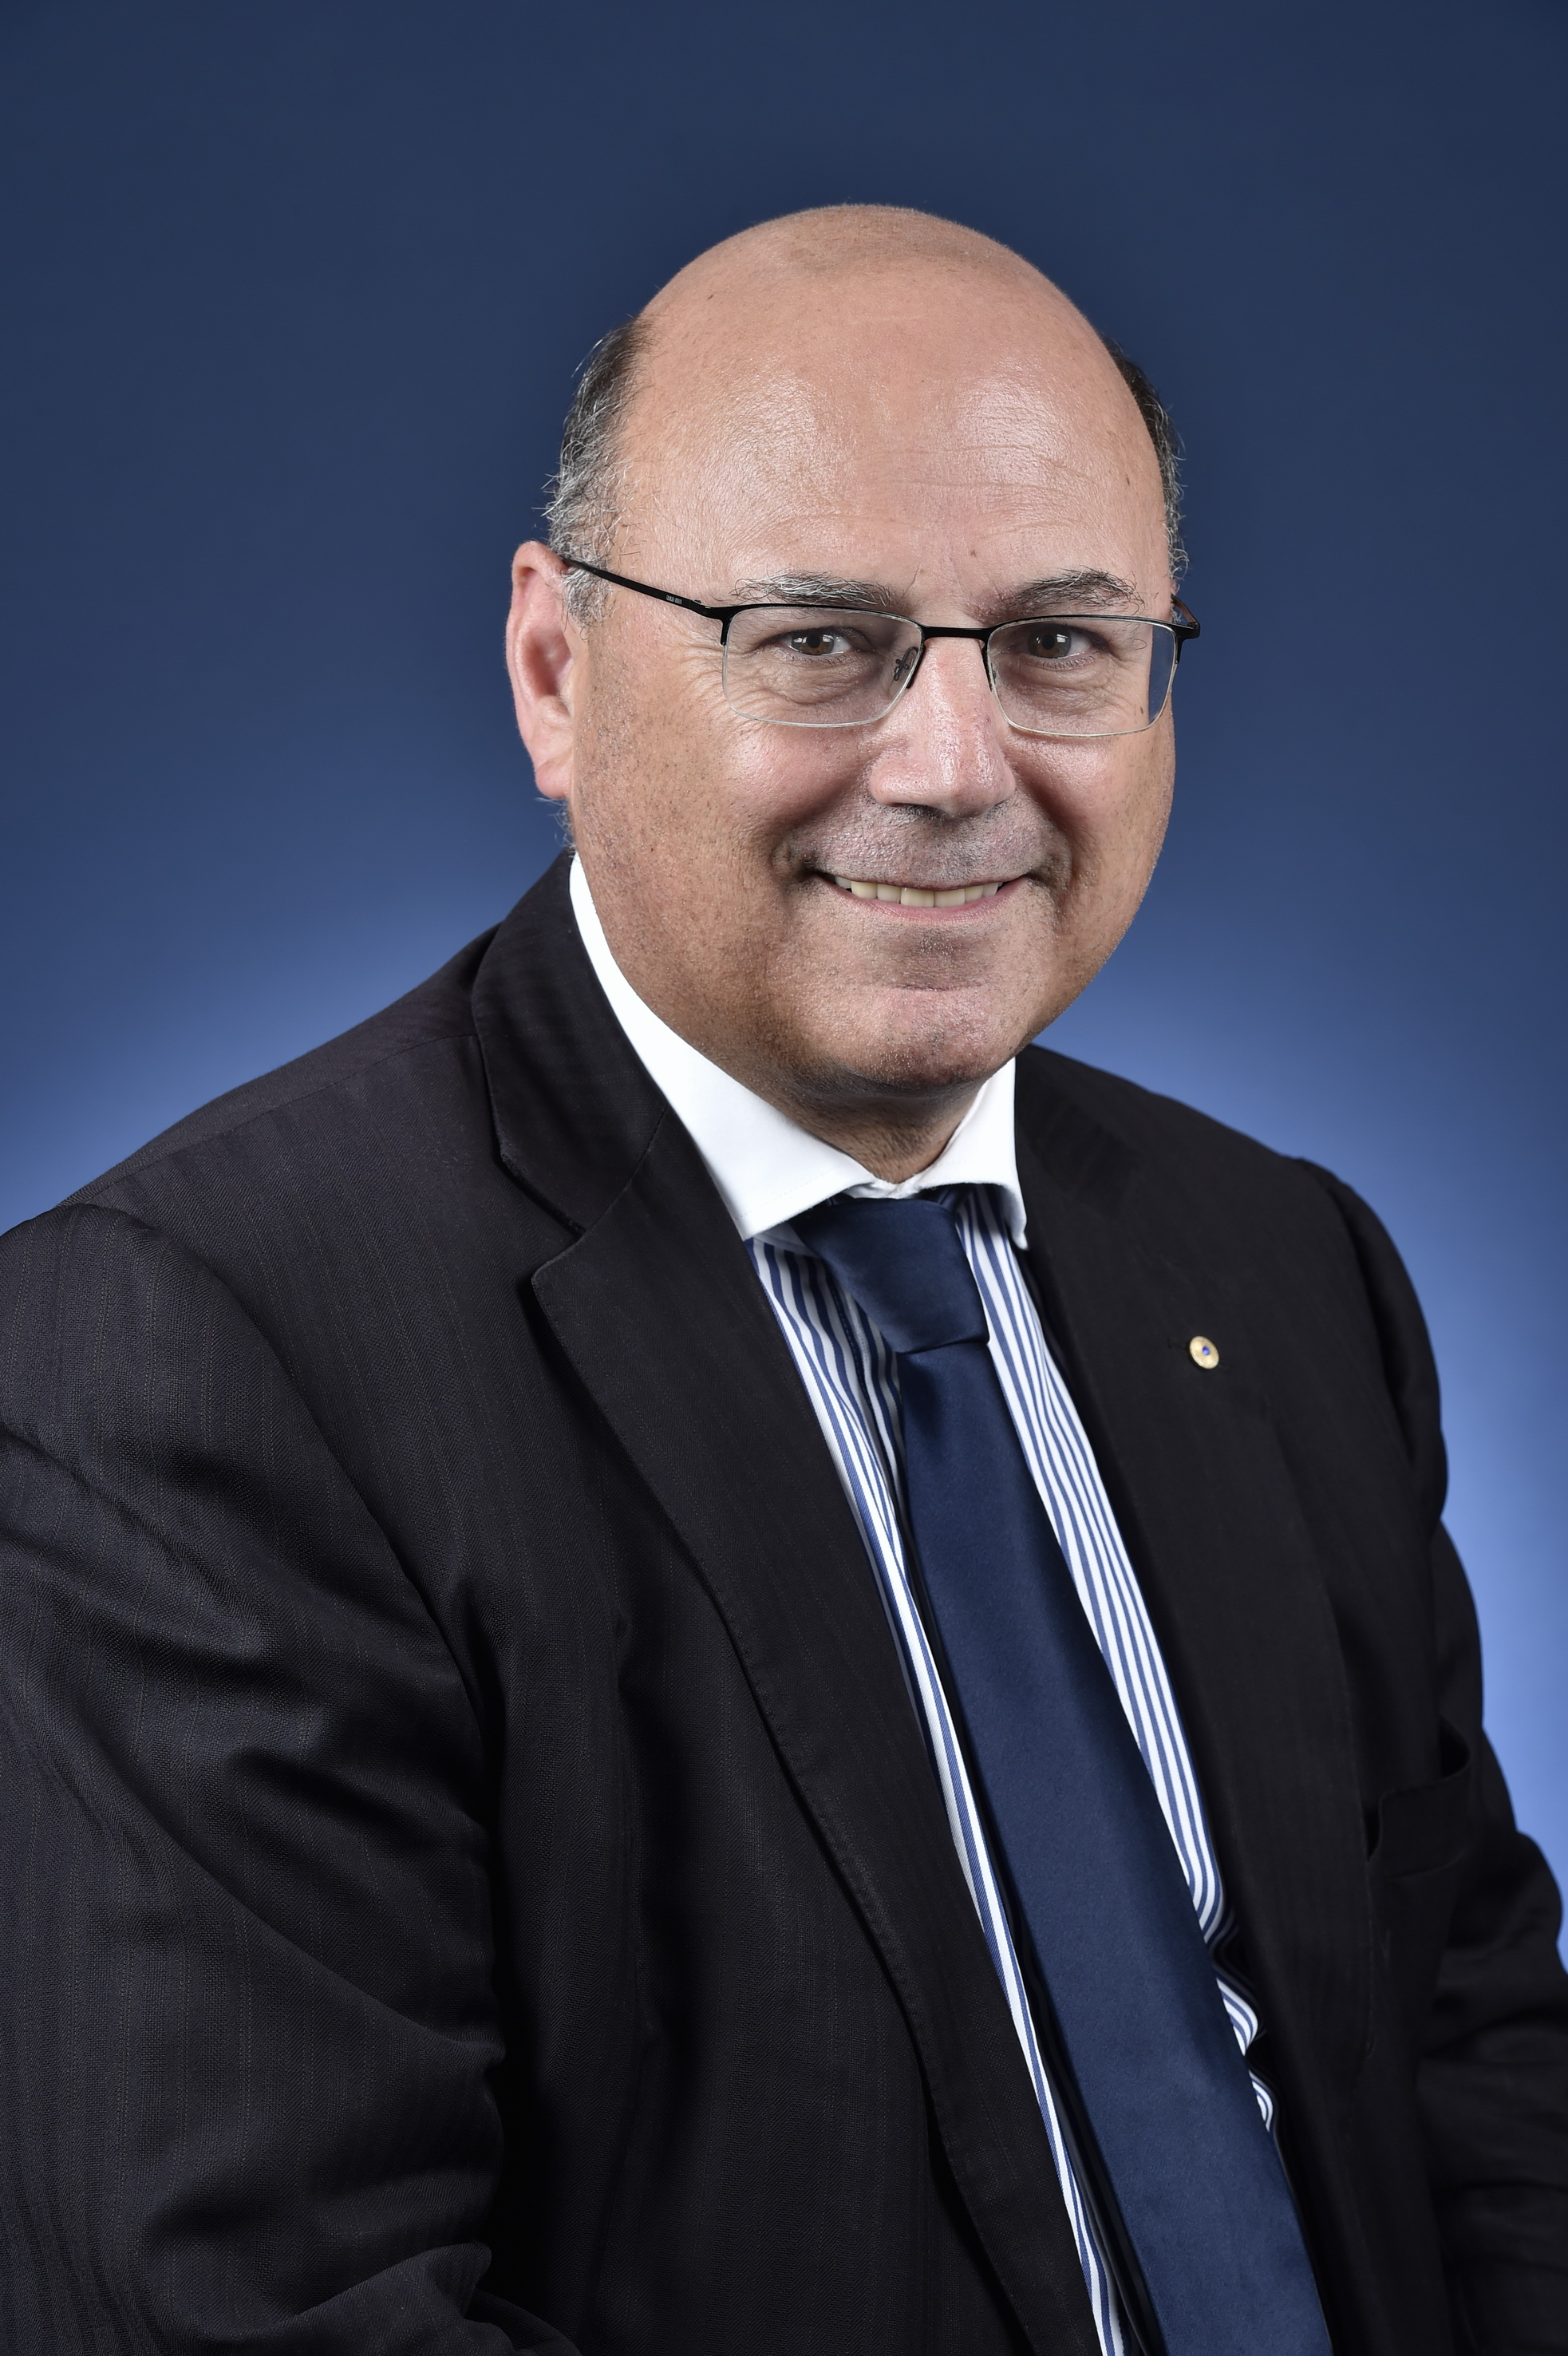 The Hon Arthur Sinodinos AO, Minister for Industry, Innovation and Science.